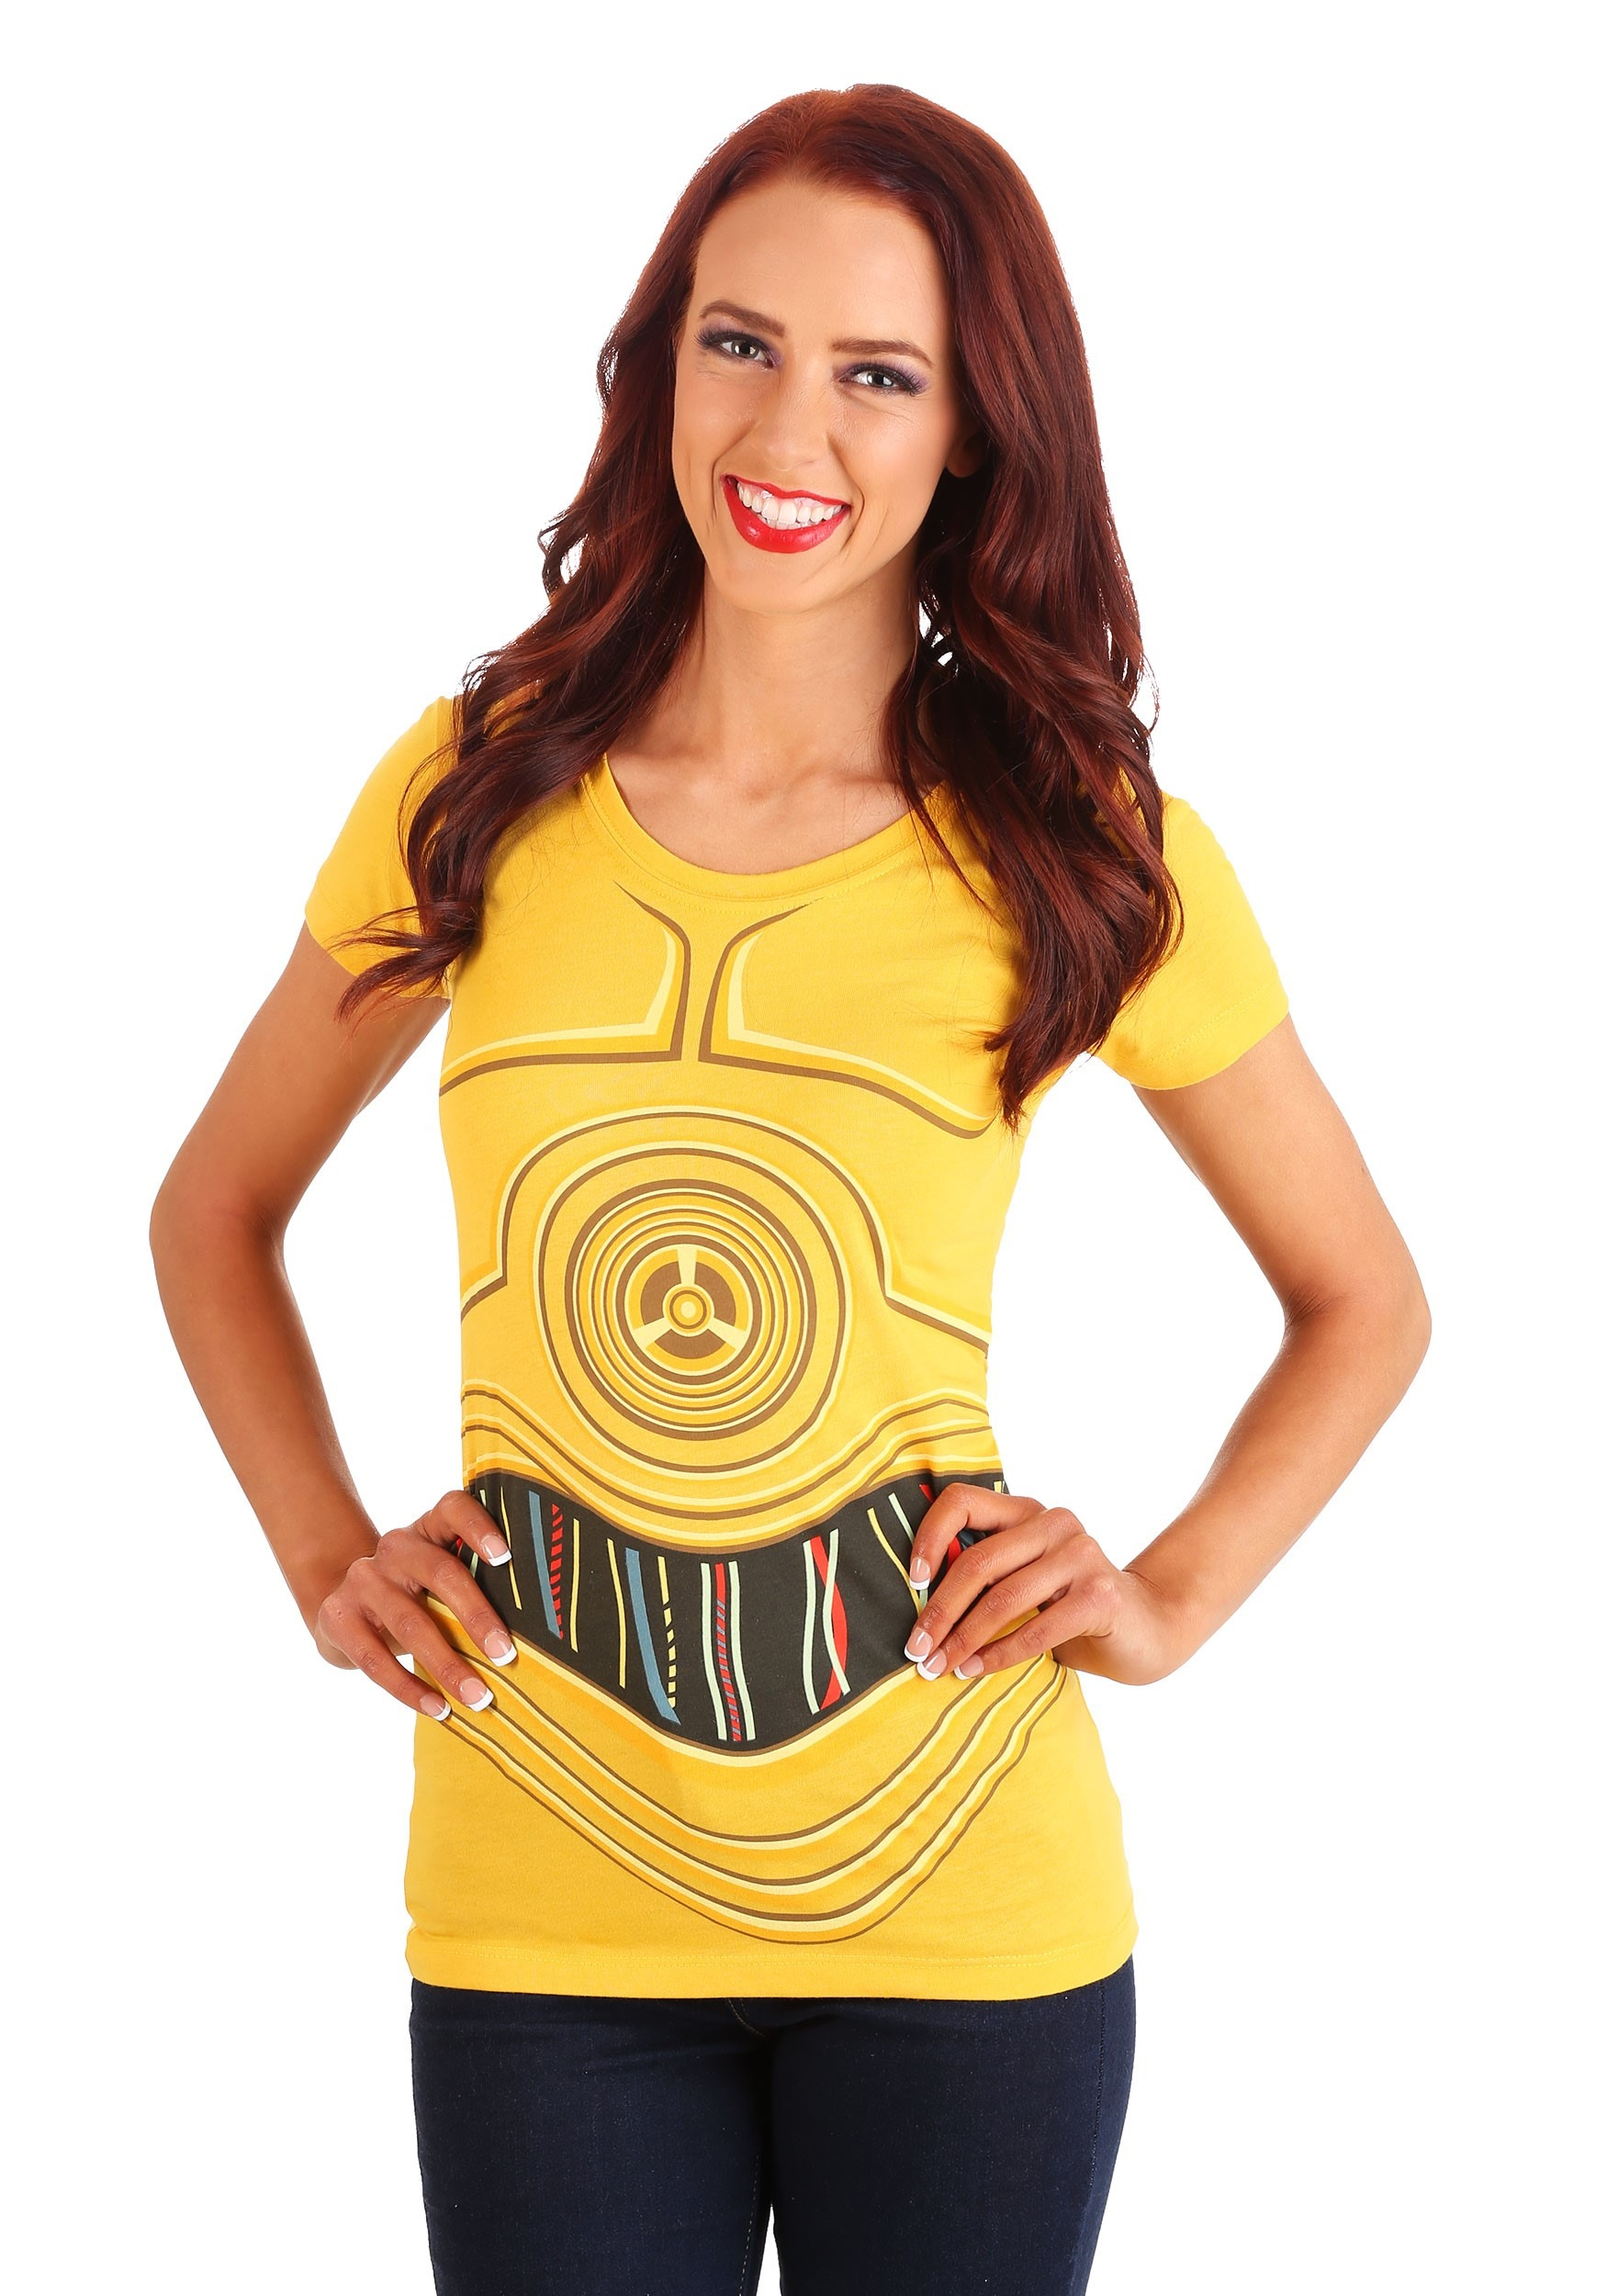 Womens star wars i am c3po costume t shirt for Costume t shirts online